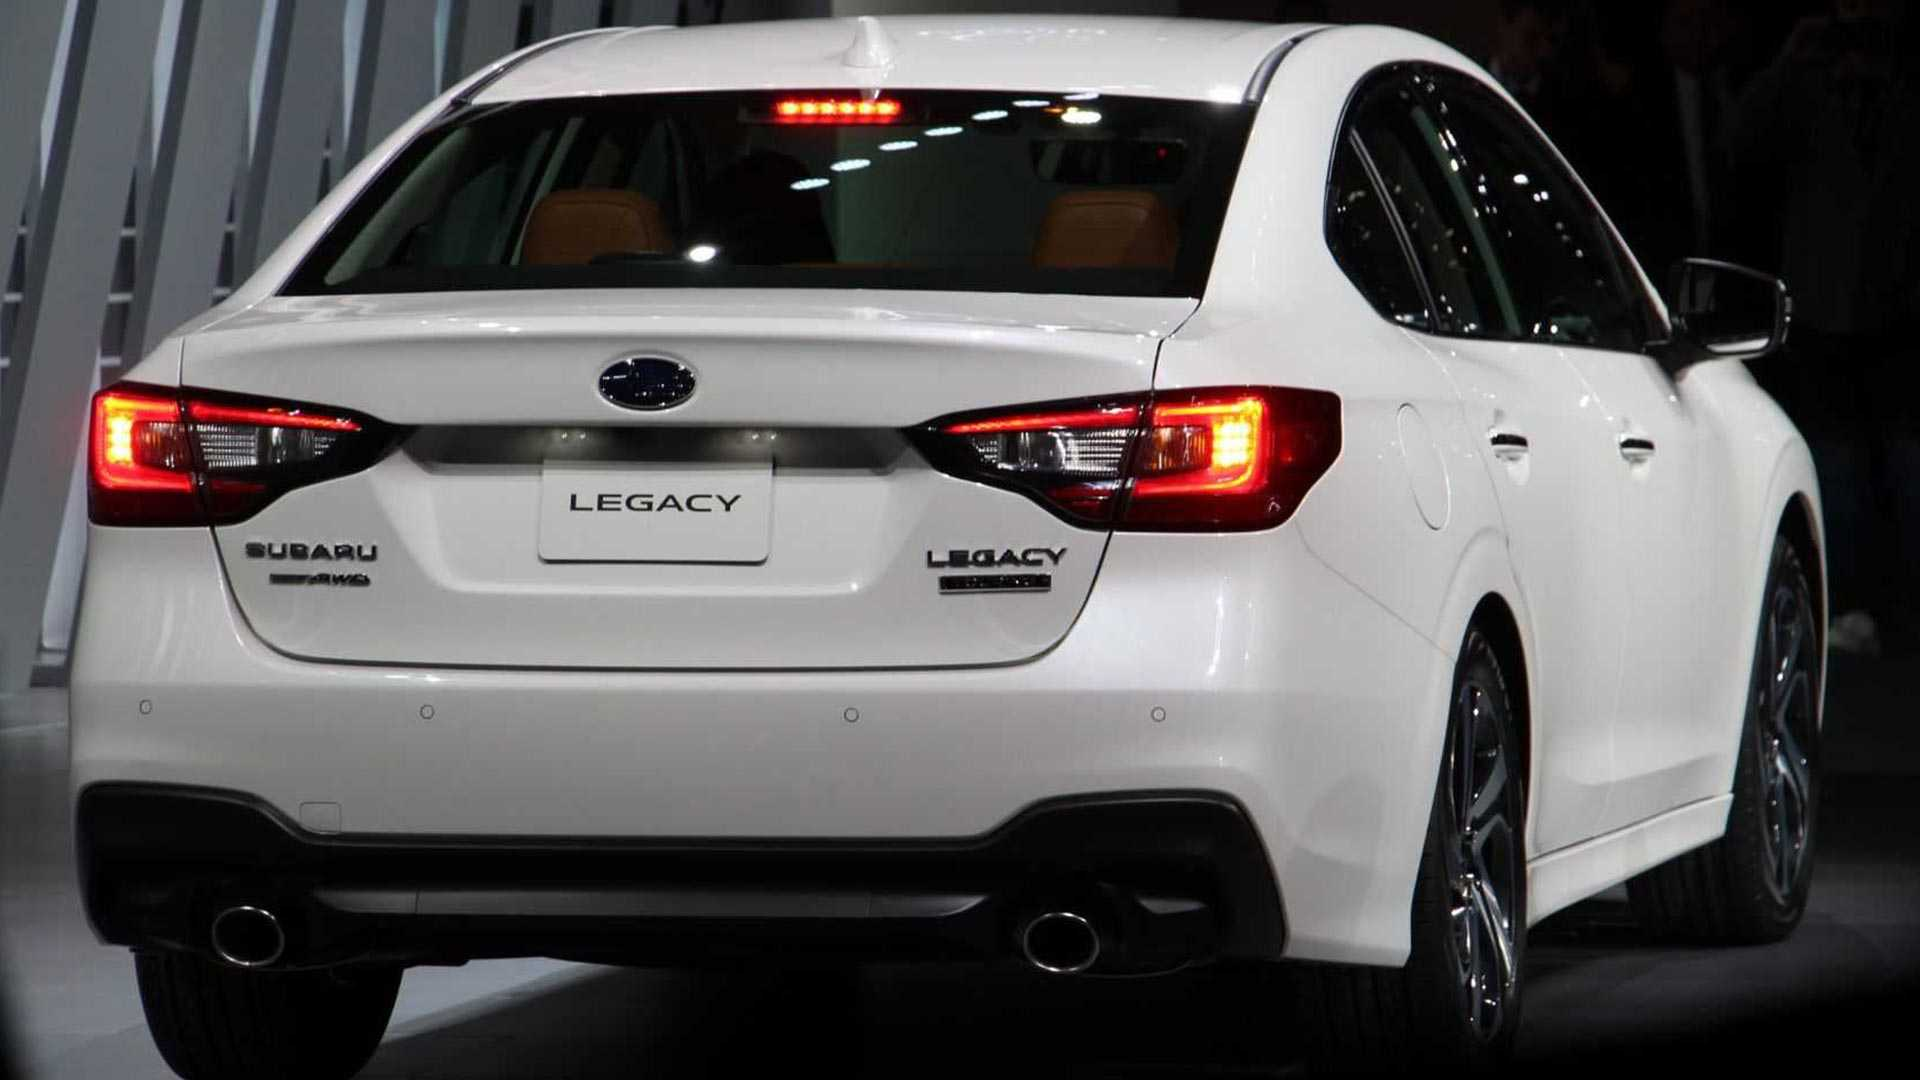 19 All New 2020 Subaru Legacy Engine Exterior And Interior